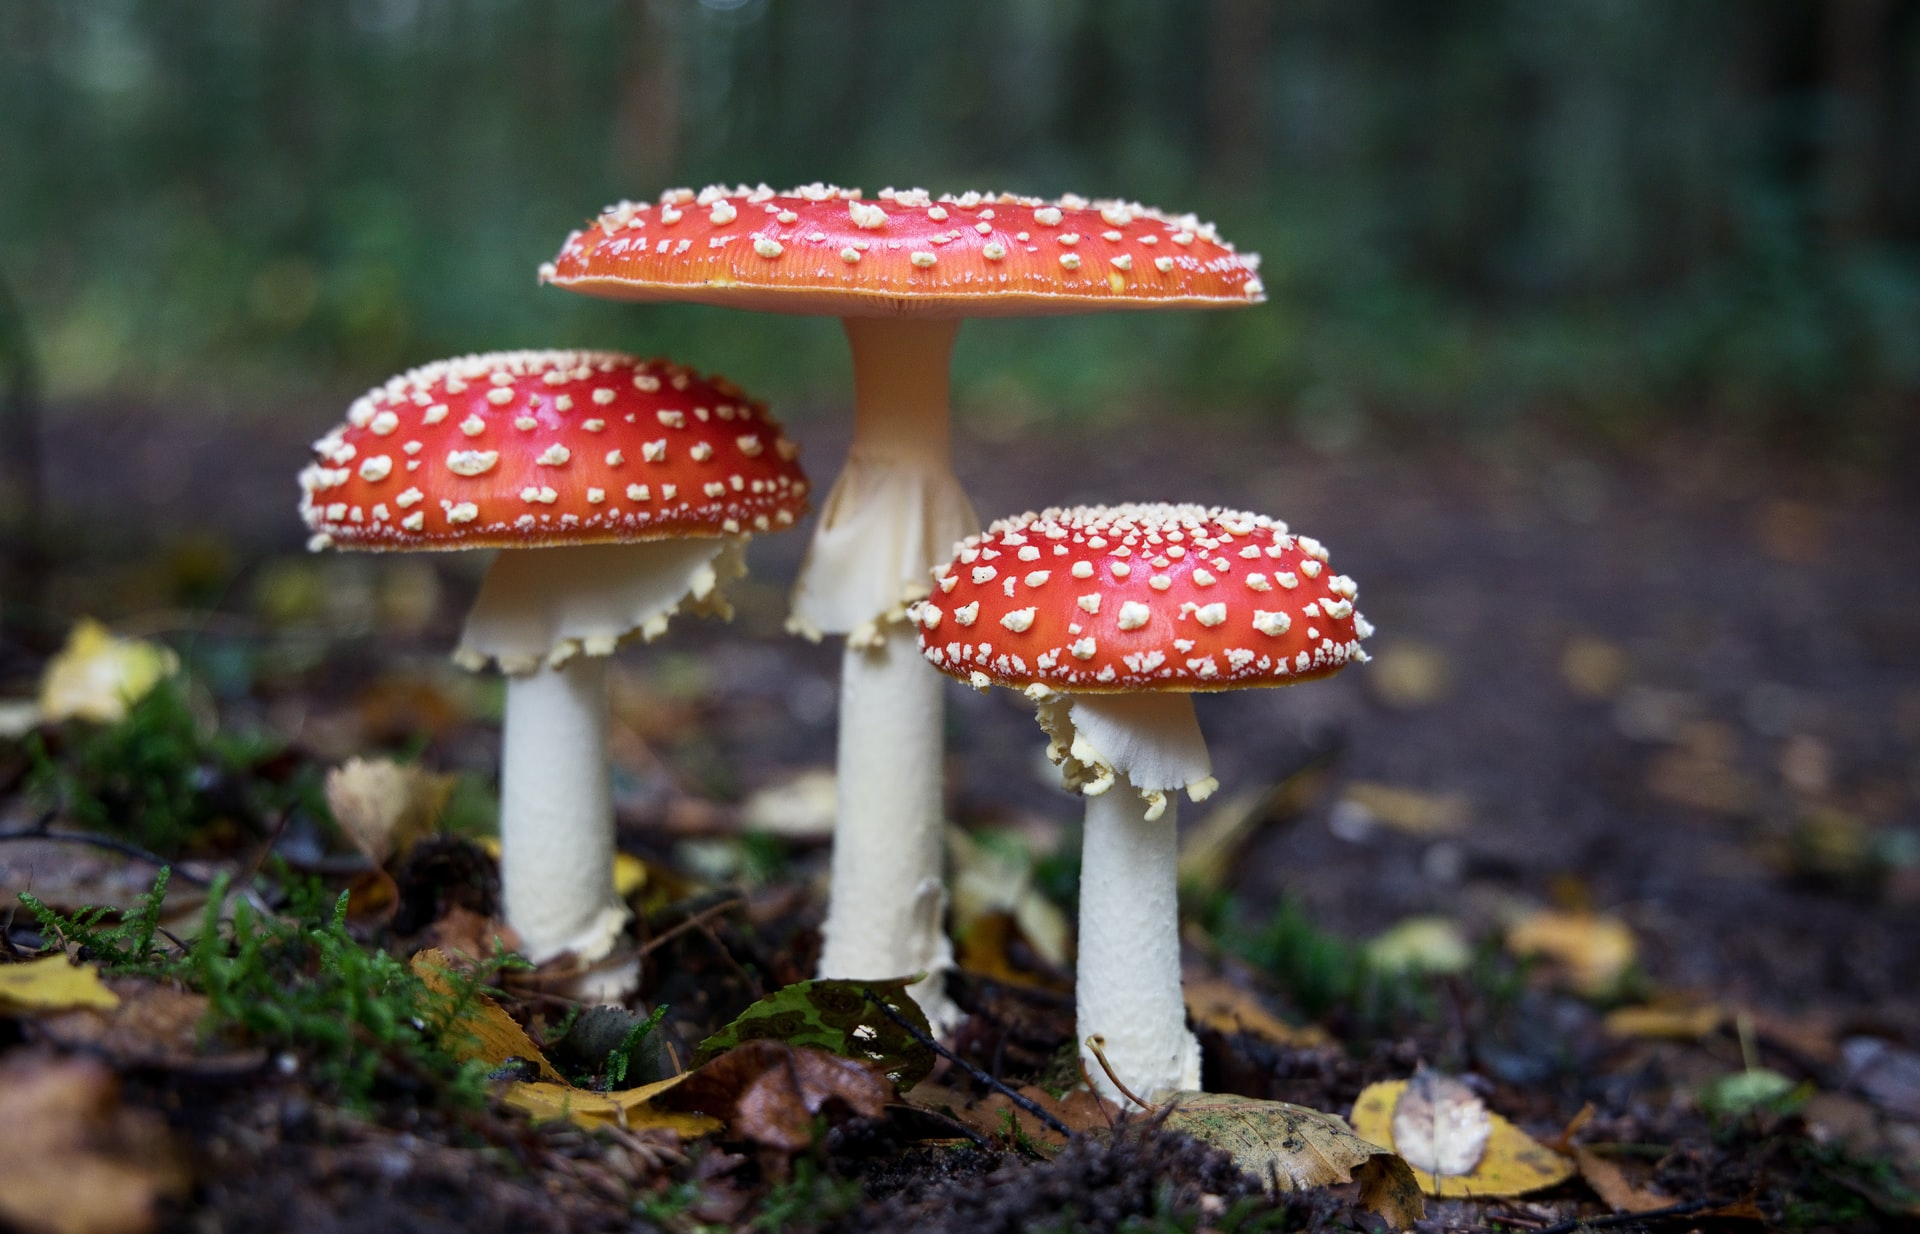 Three 'Fly Agaric' mushrooms sprout from a leafy woodland floor. Their white stems are topped with bright red caps, spotted with white bumps.